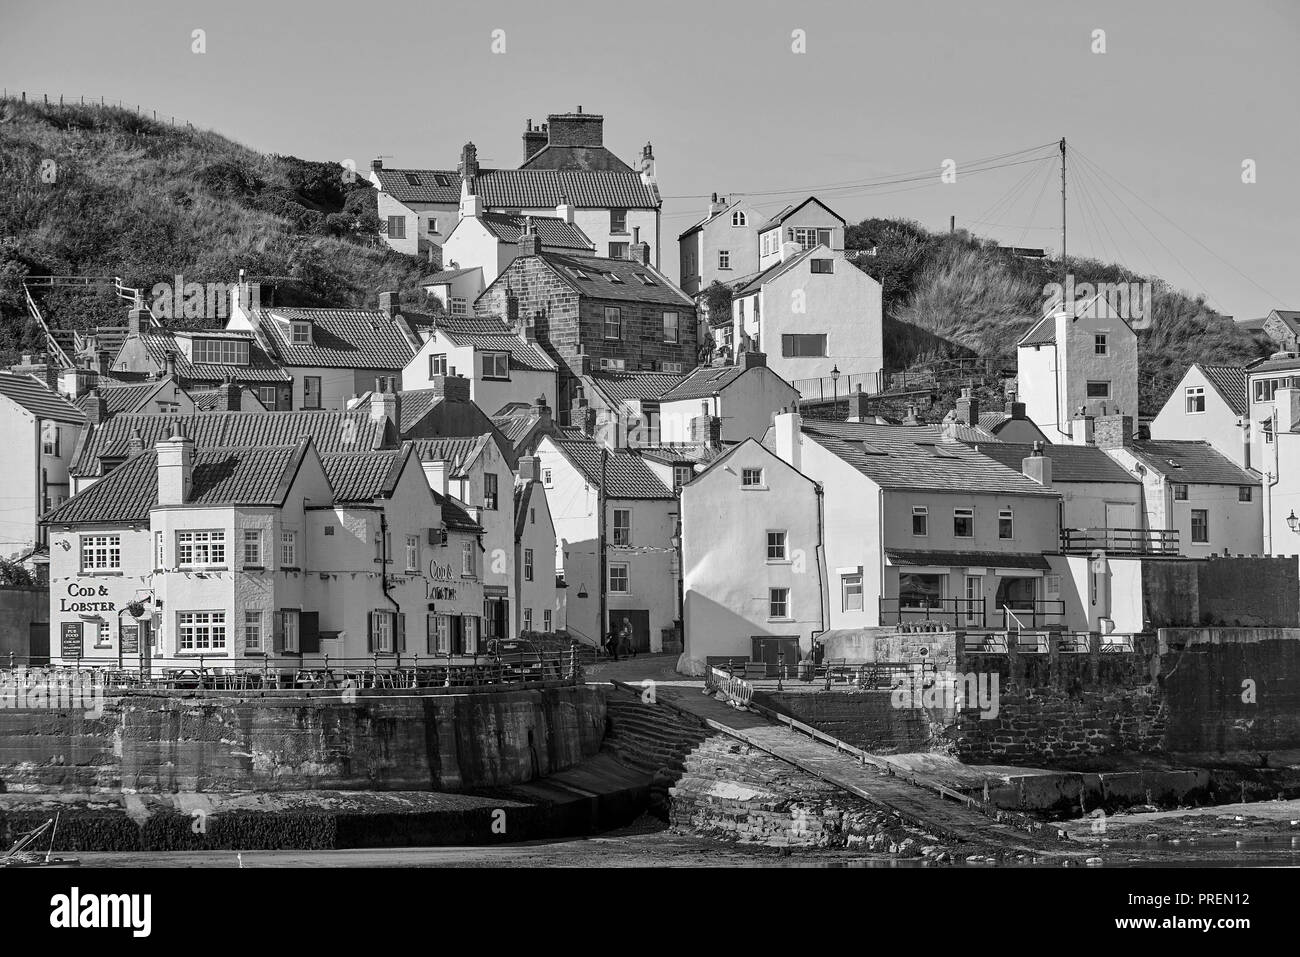 The historic village of Staithies, North Yorkshire coast , North East England, UK - Stock Image